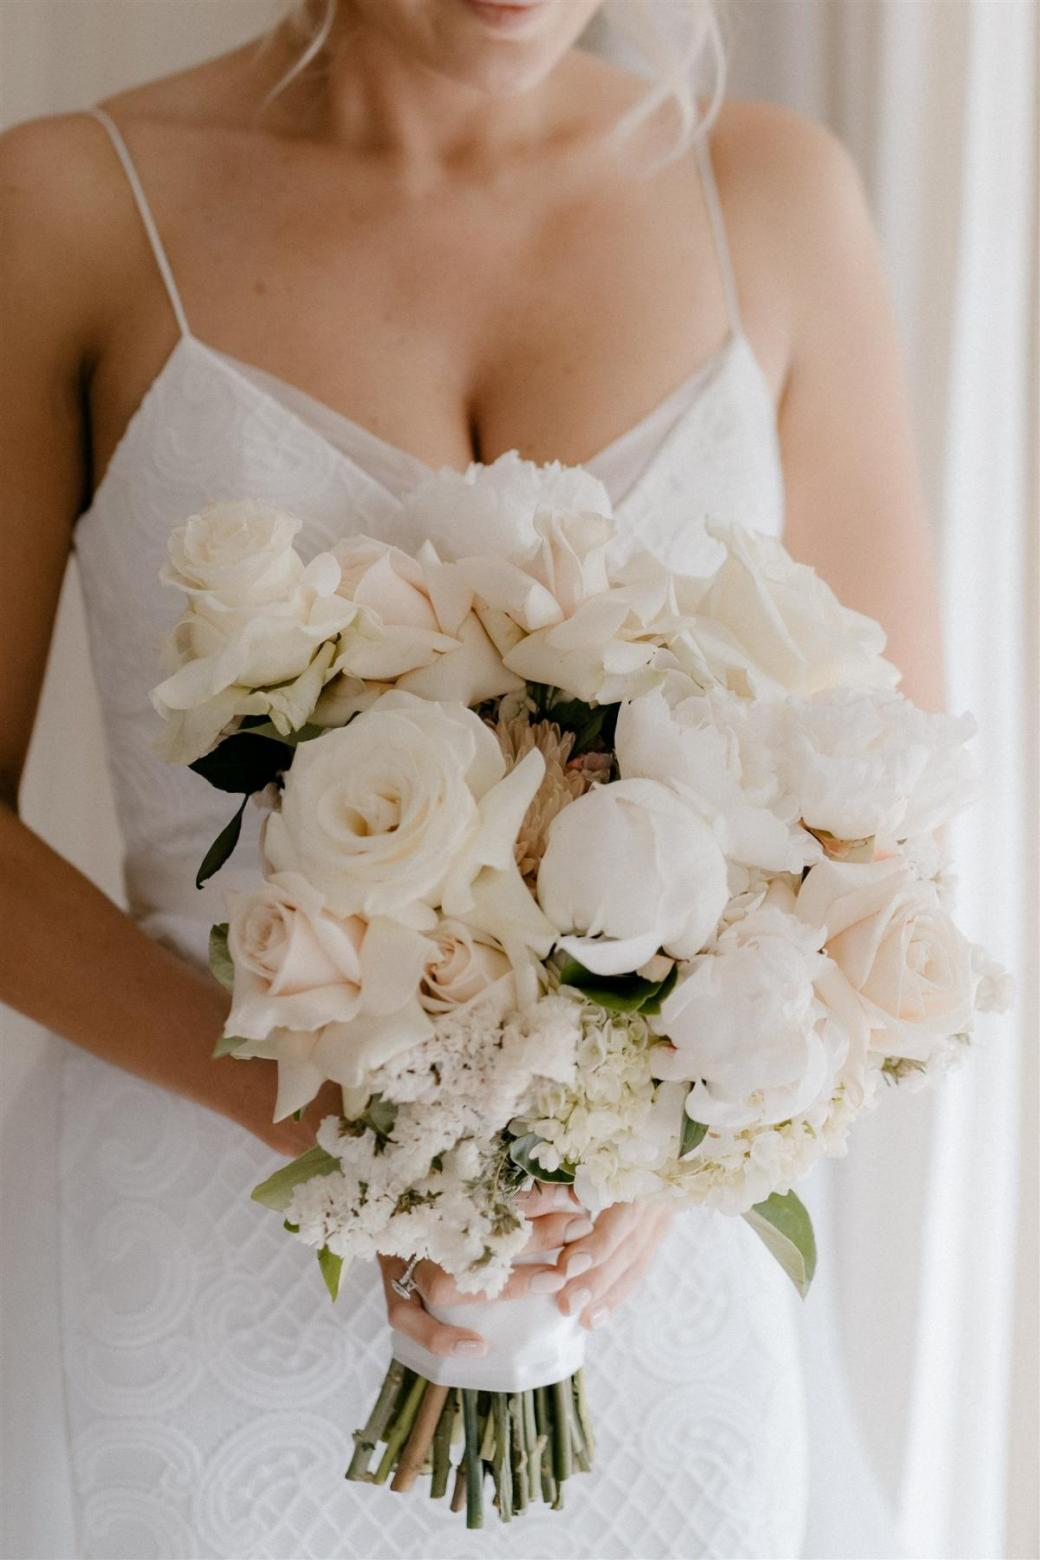 Bride in Elodie lace wedding dress by Karen Willis Holmes holding timeless bridal flowers